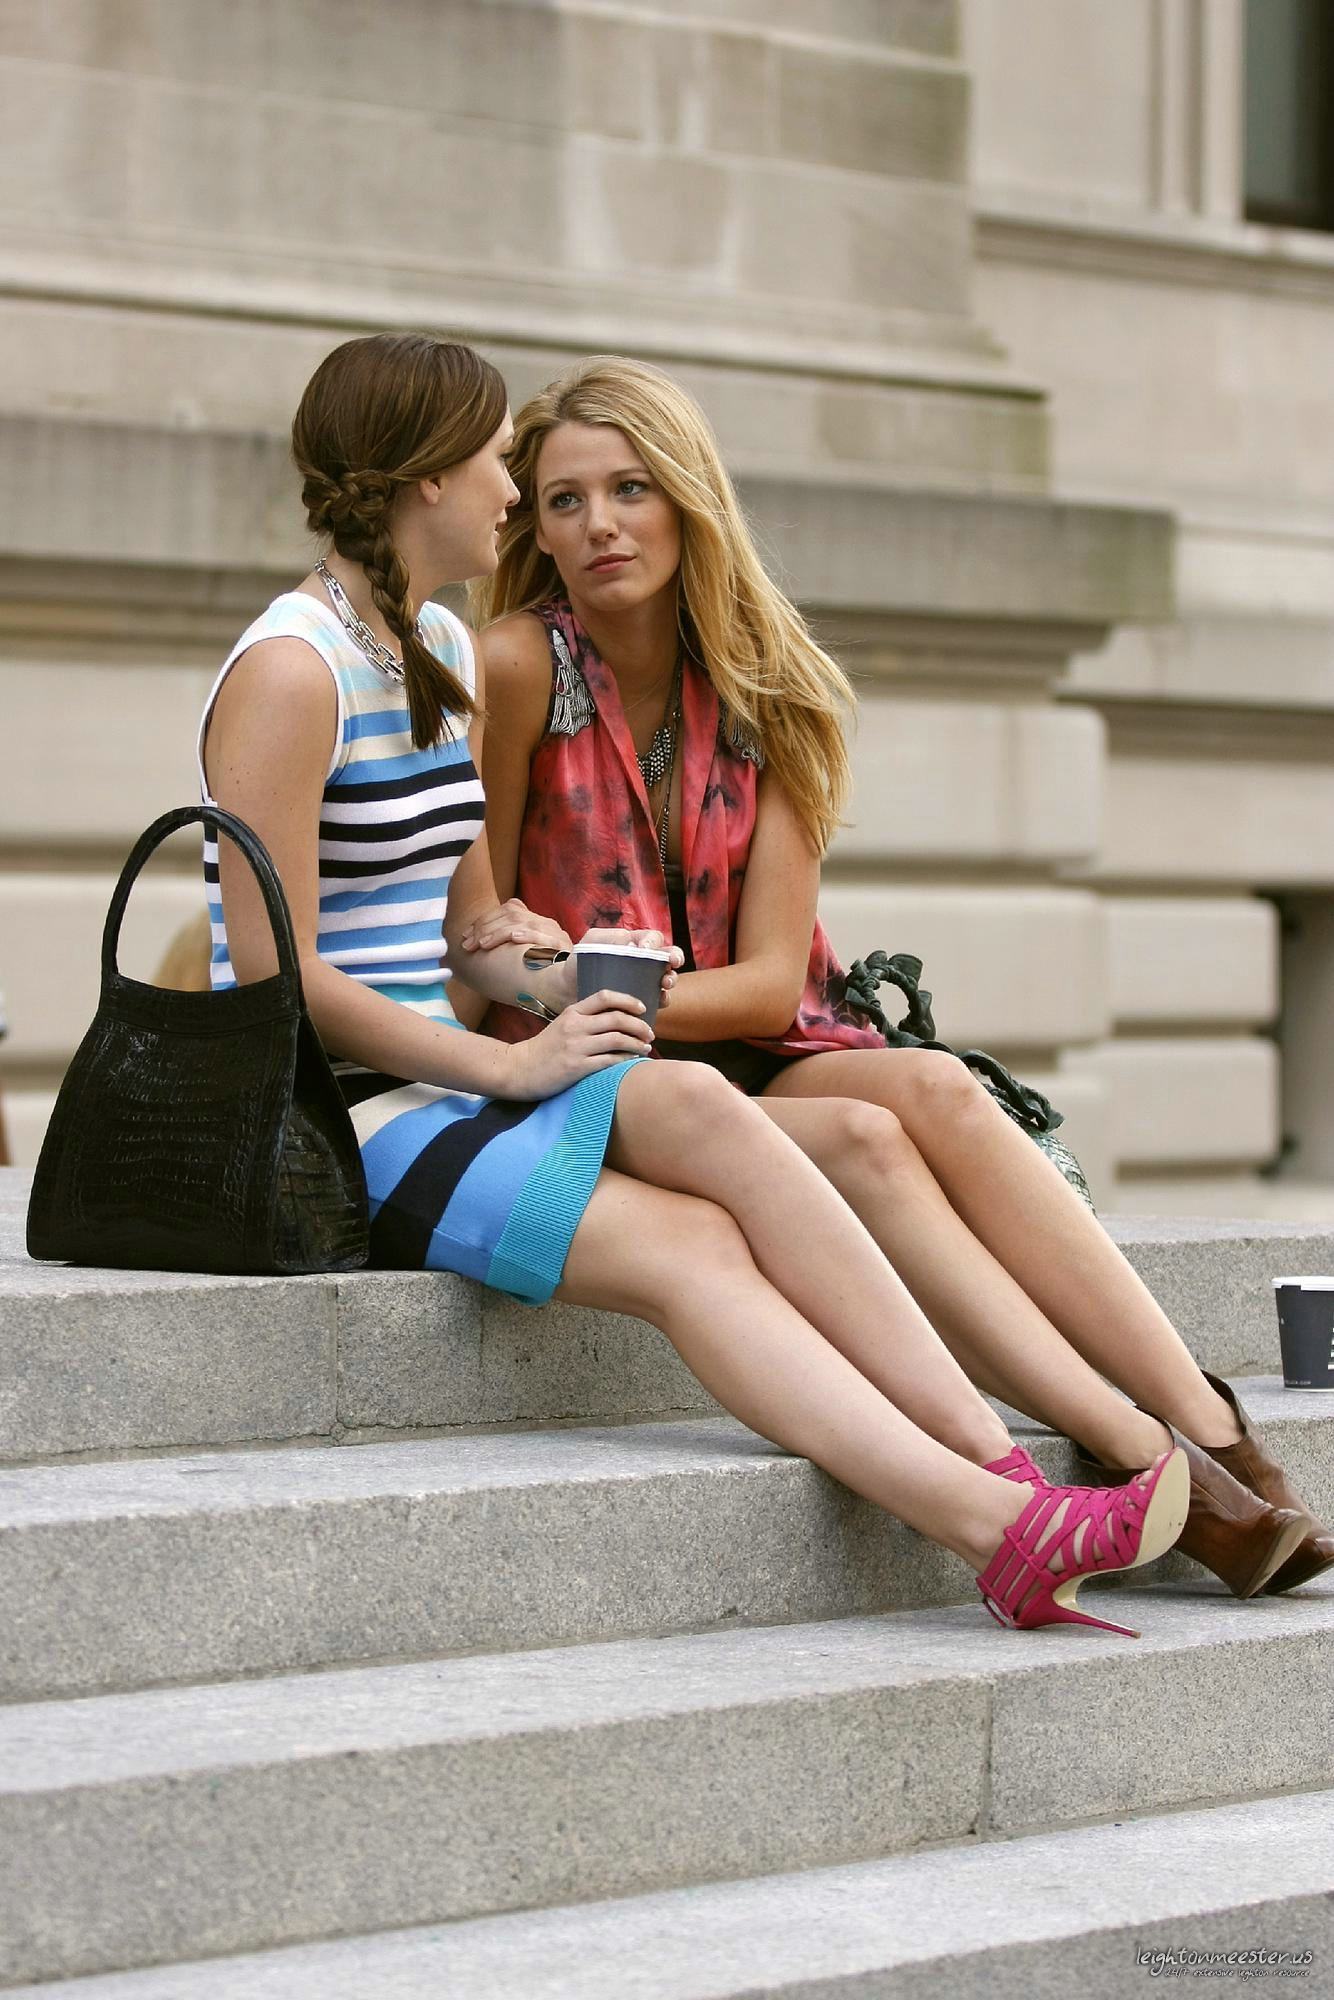 Outfits terza stagione New-Blair-stills-3-02-The-Freshman-blair-waldorf-8274386-1334-2000